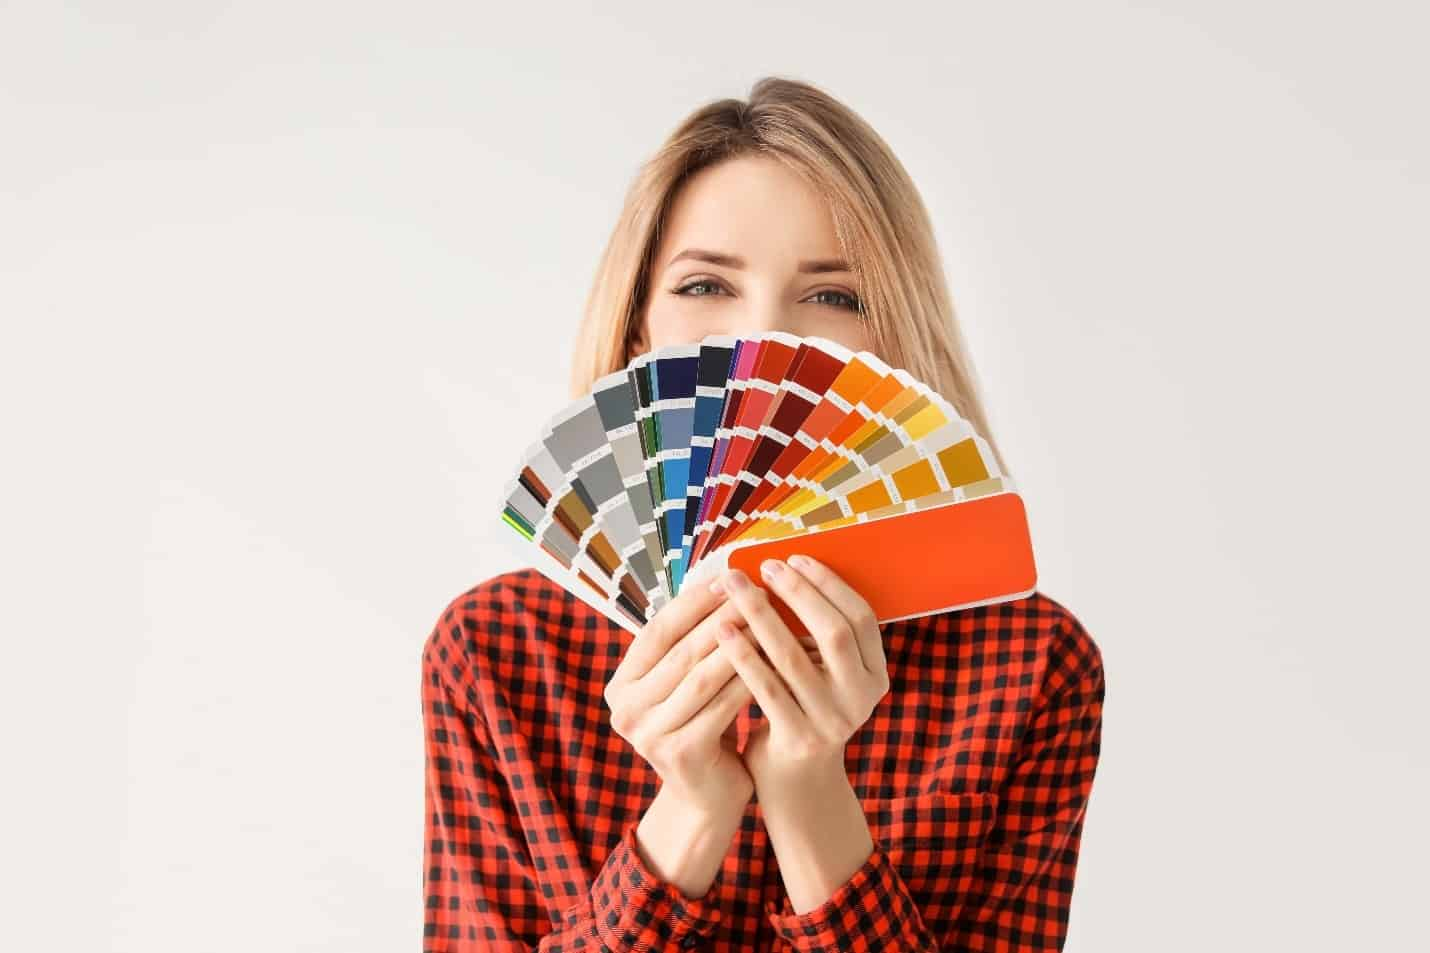 A woman holding a fan of color samples.